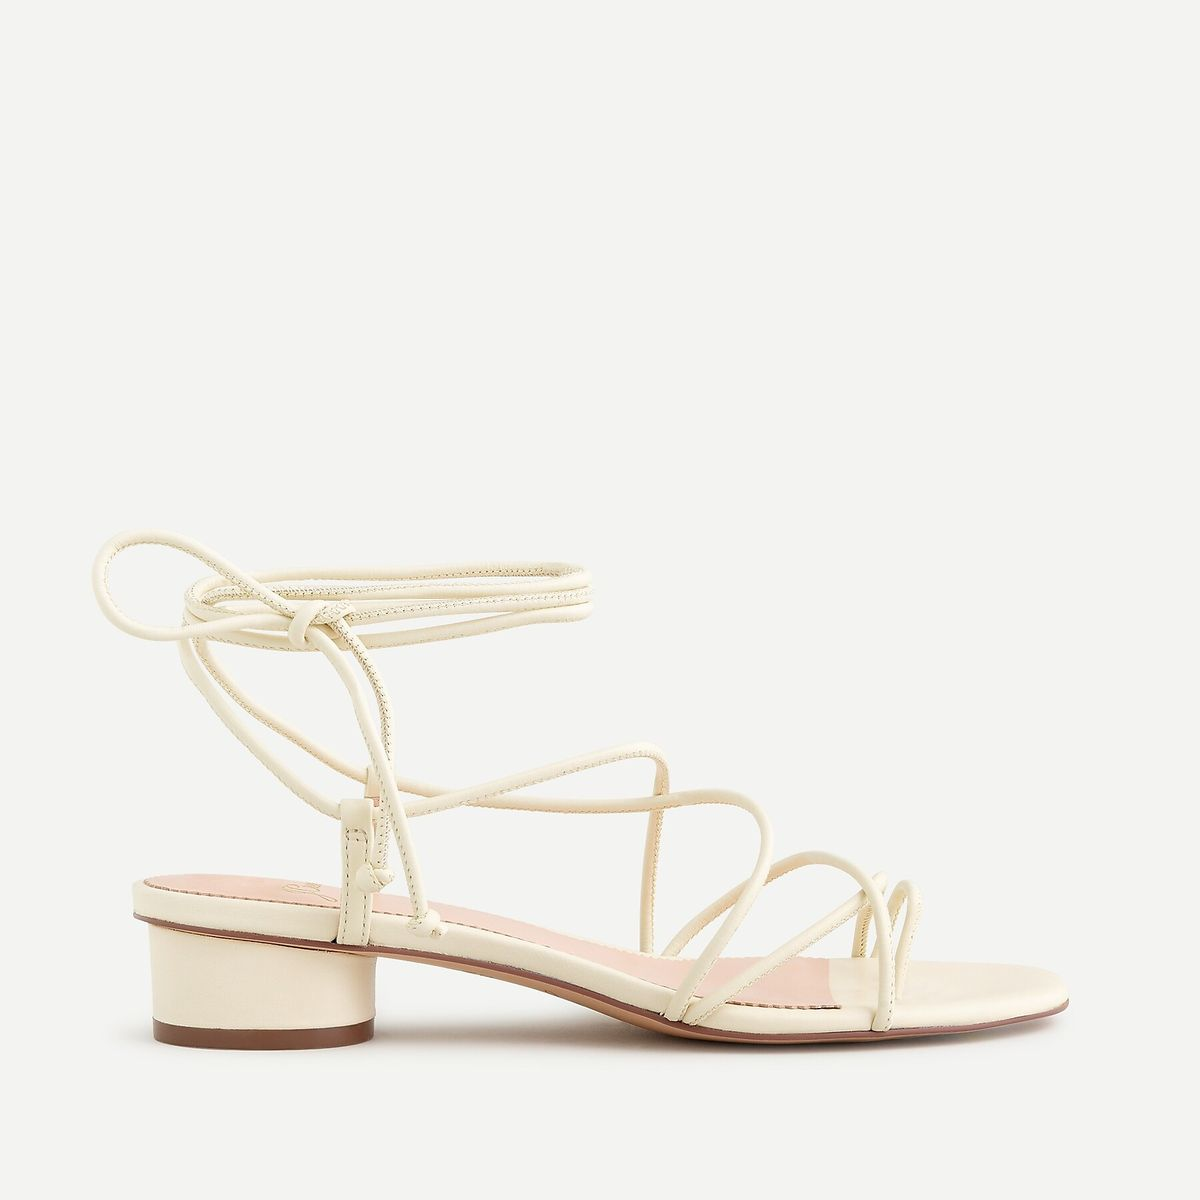 J.Crew: Strappy Lace-up Sandals With Toe Ring